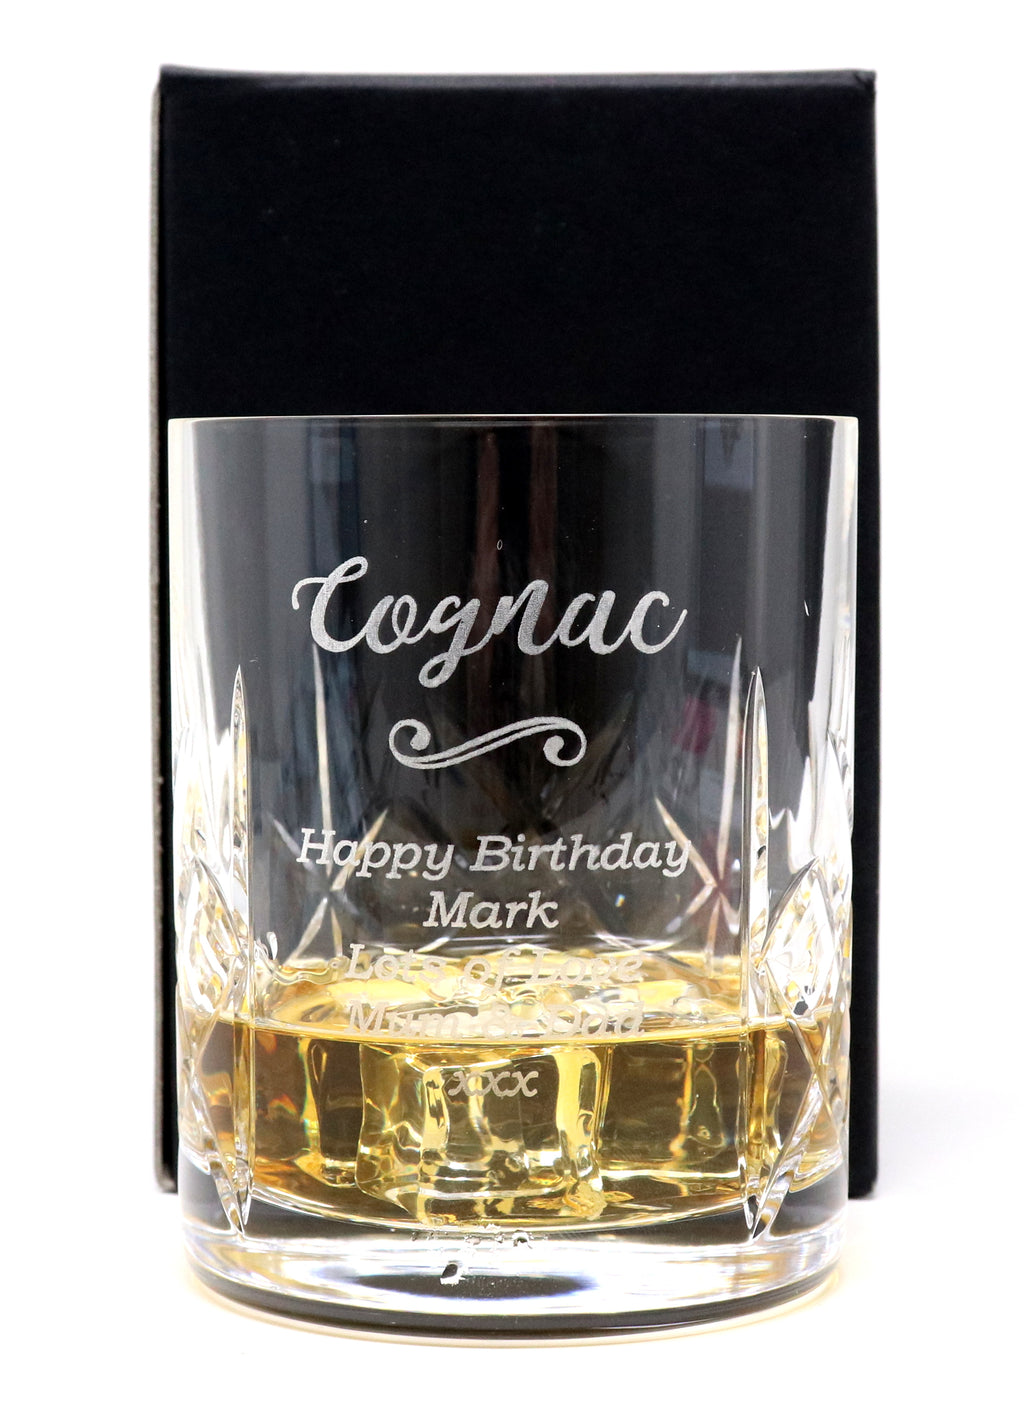 Personalised Crystal Glass Tumbler - Cognac Design